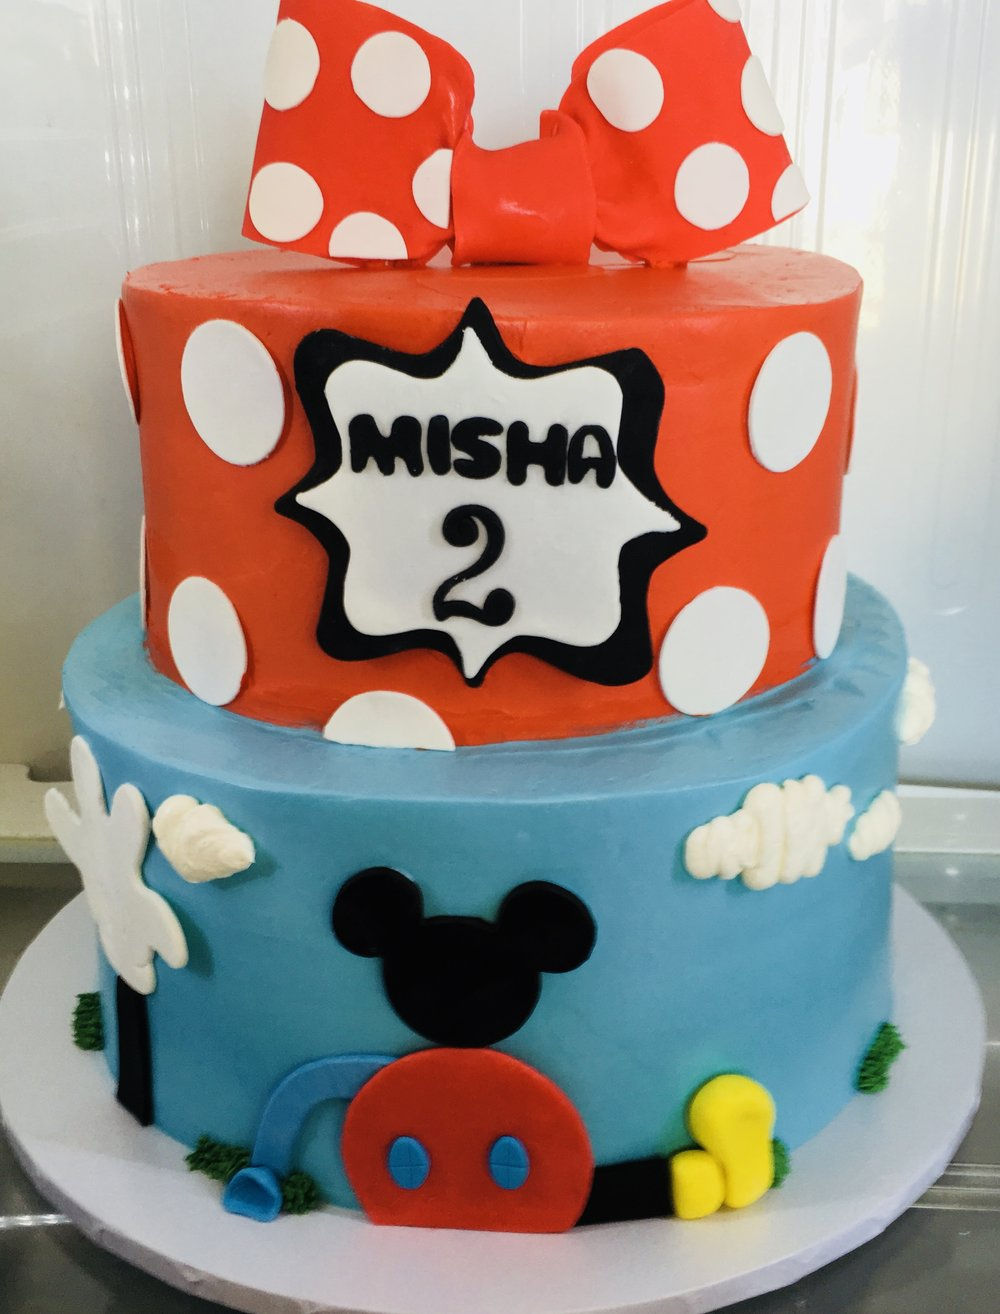 Minnie Mouse - Playhouse Disney Birthday Cake - Mwokaji Cakery .jpg